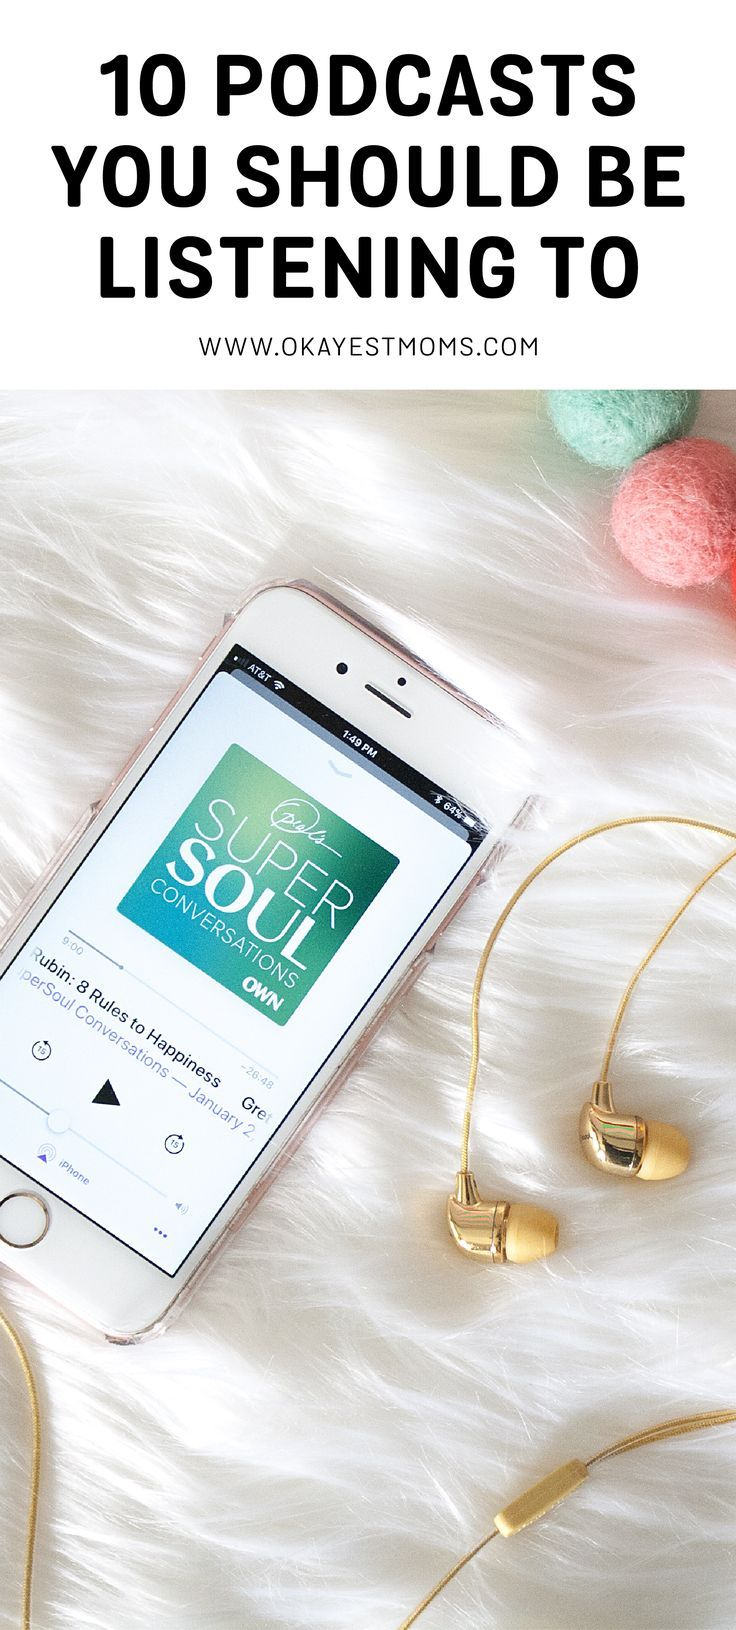 10 more podcasts you should be listening to